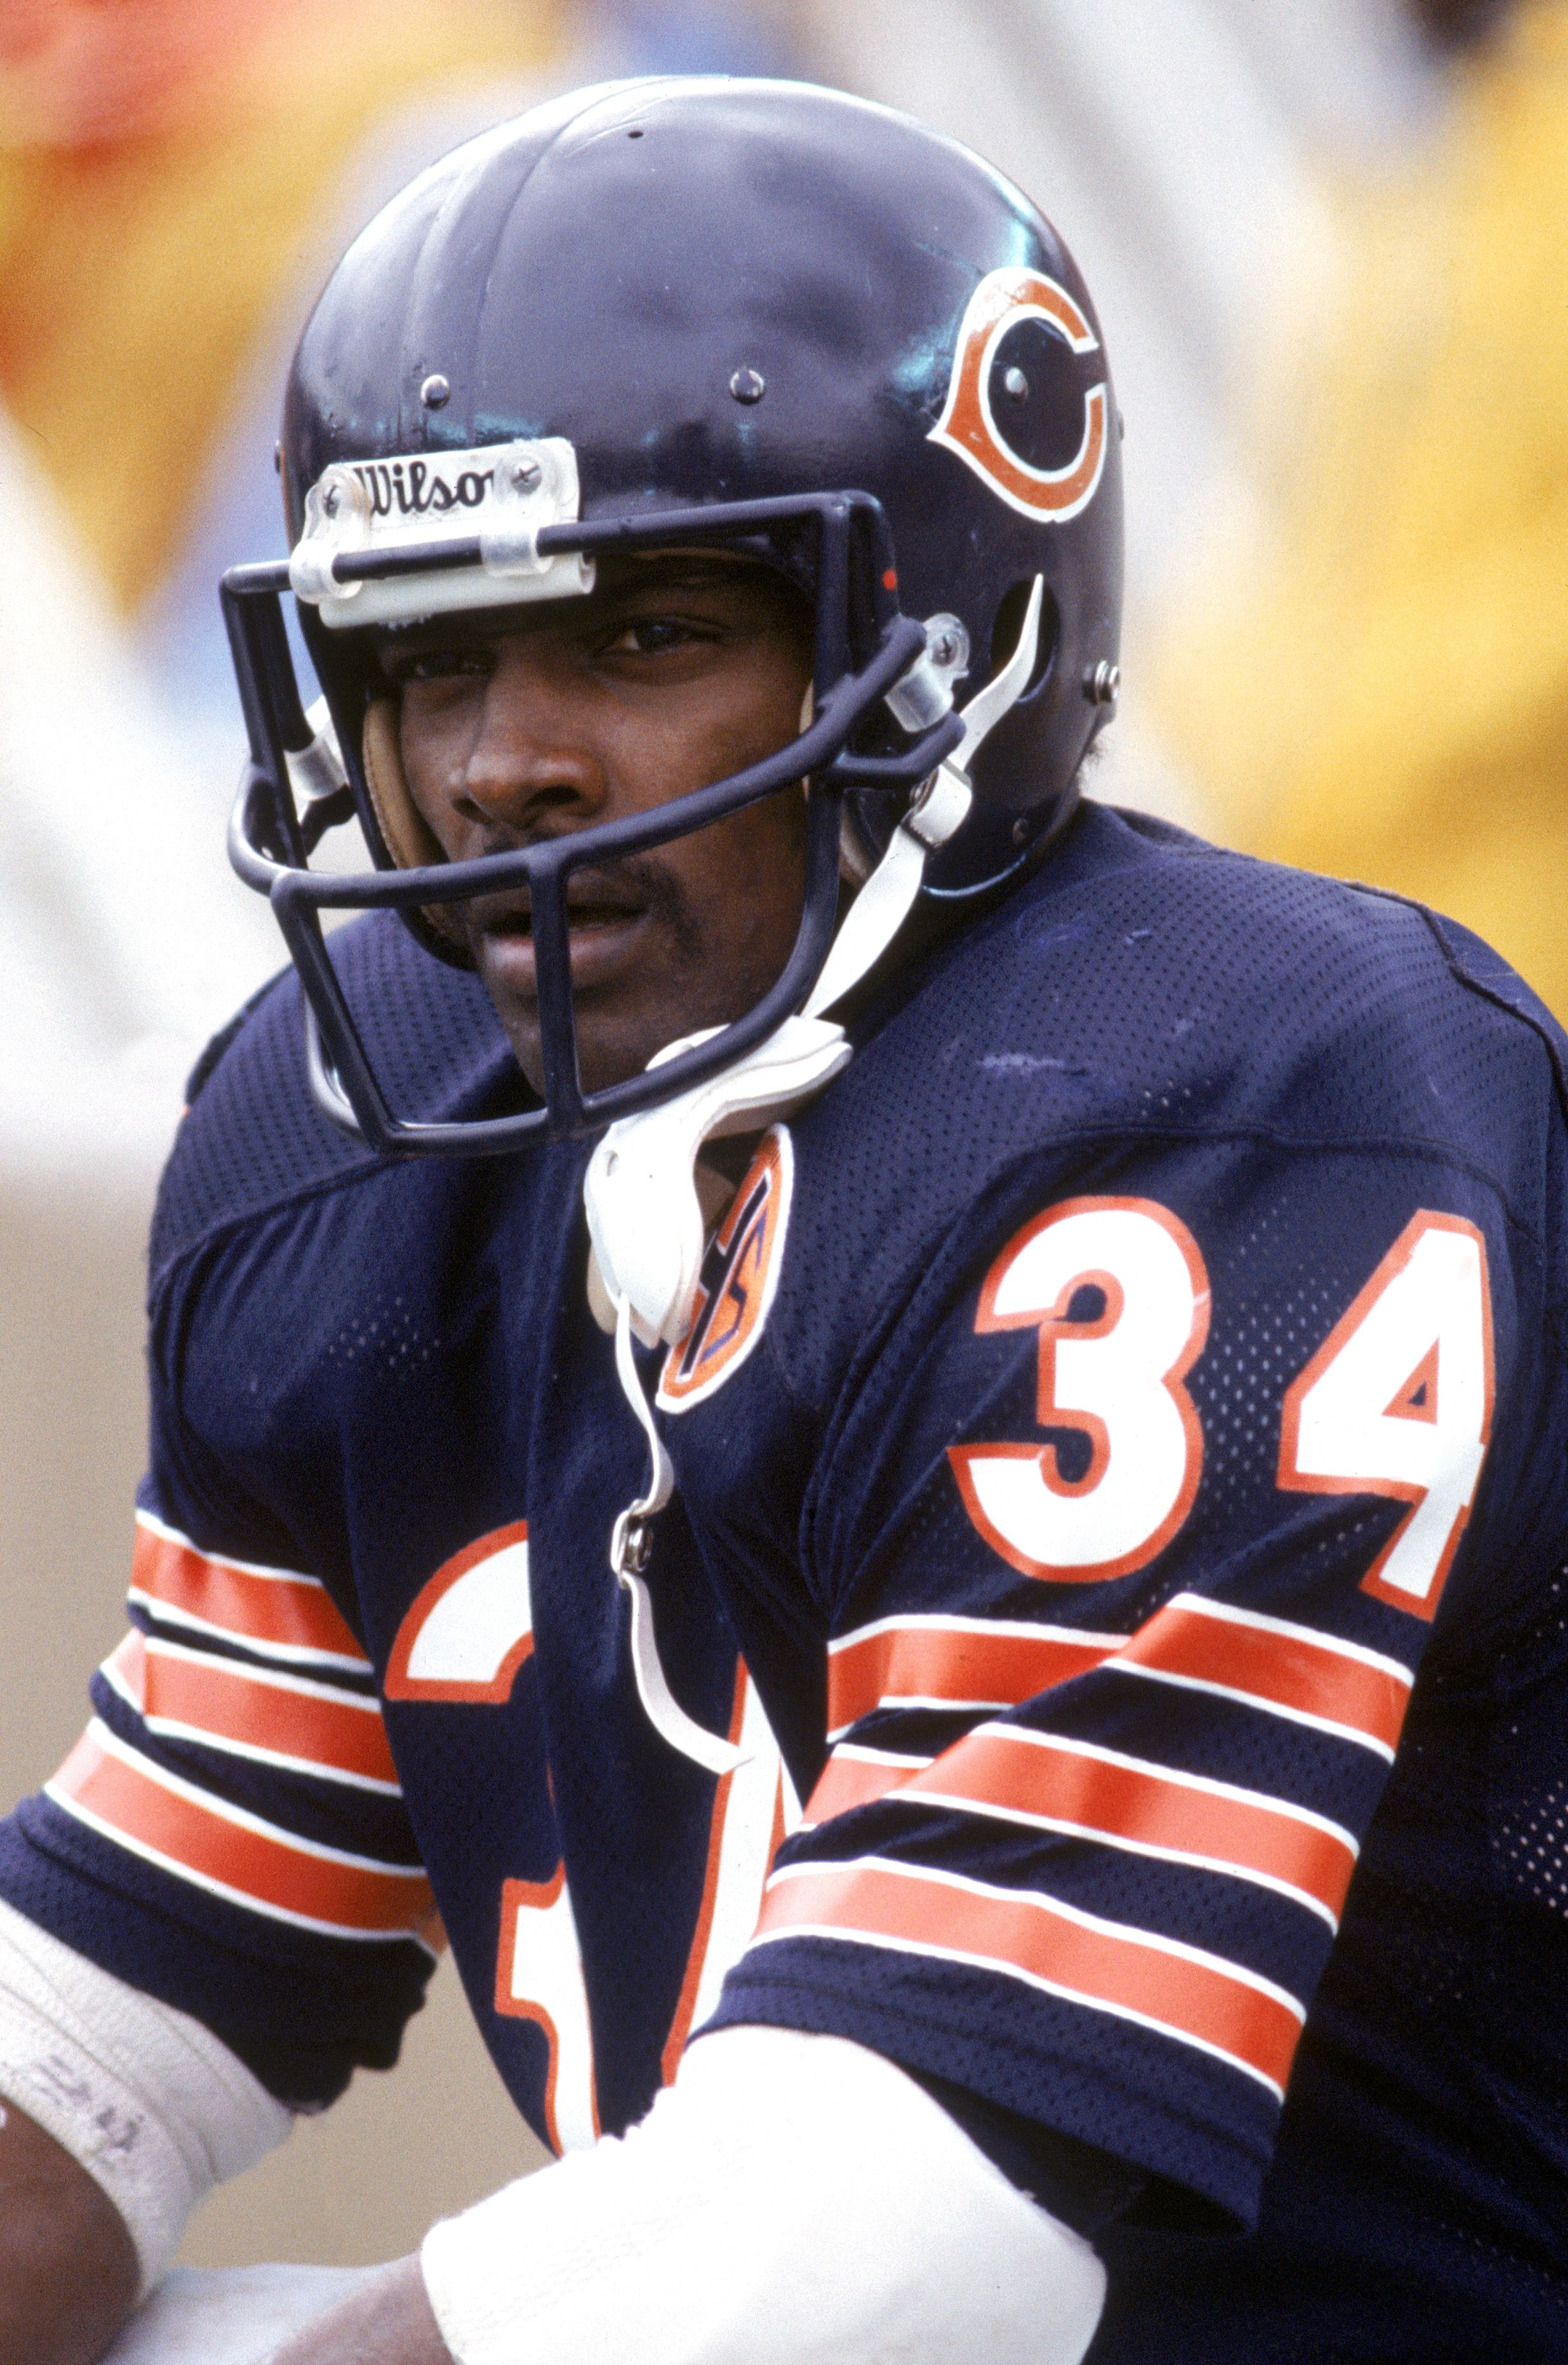 63143f31ddb 1983: Running back Walter Payton #34 of the Chicago Bears looks on during a  game in 1983.